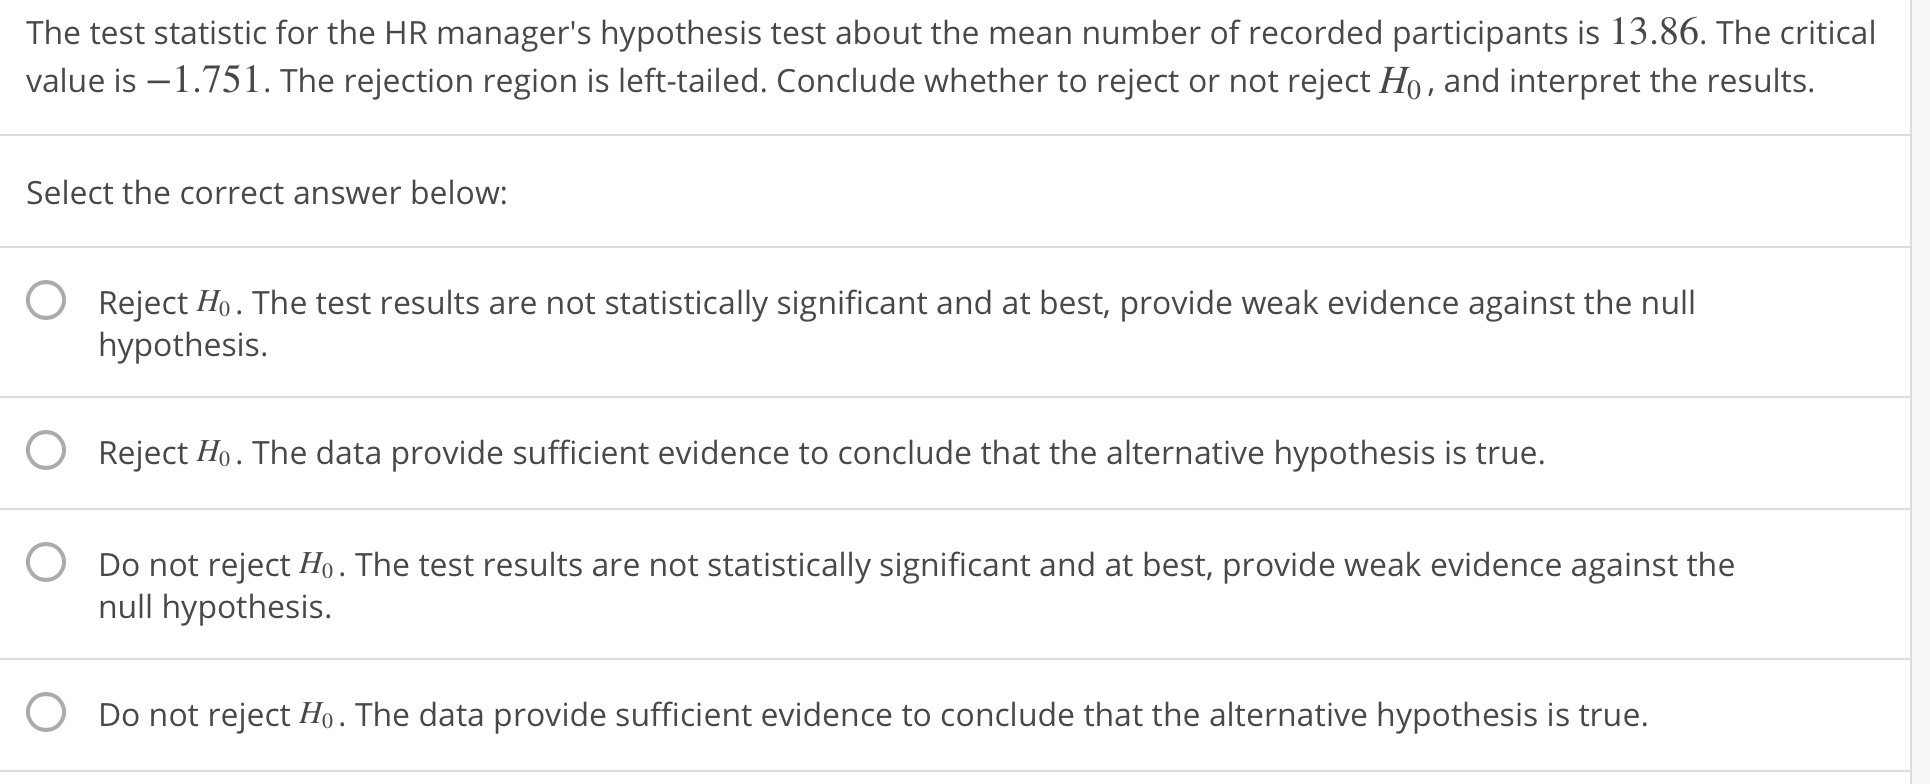 The test statistic for the HR manager's hypothesis test about the mean number of recorded participants is 13.86. The critical value is -1.751. The rejection region is left-tailed. Conclude whether to reject or not reject Ho, and interpret the results. Select the correct answer below: O Reject Ho. The test results are not statistically significant and at best, provide weak evidence against the null hypothesis. Reject Ho. The data provide sufficient evidence to conclude that the alternative hypothesis is true. Do not reject Ho. The test results are not statistically significant and at best, provide weak evidence against the O O null hypothesis. O Do not reject Ho. The data provide sufficient evidence to conclude that the alternative hypothesis is true.